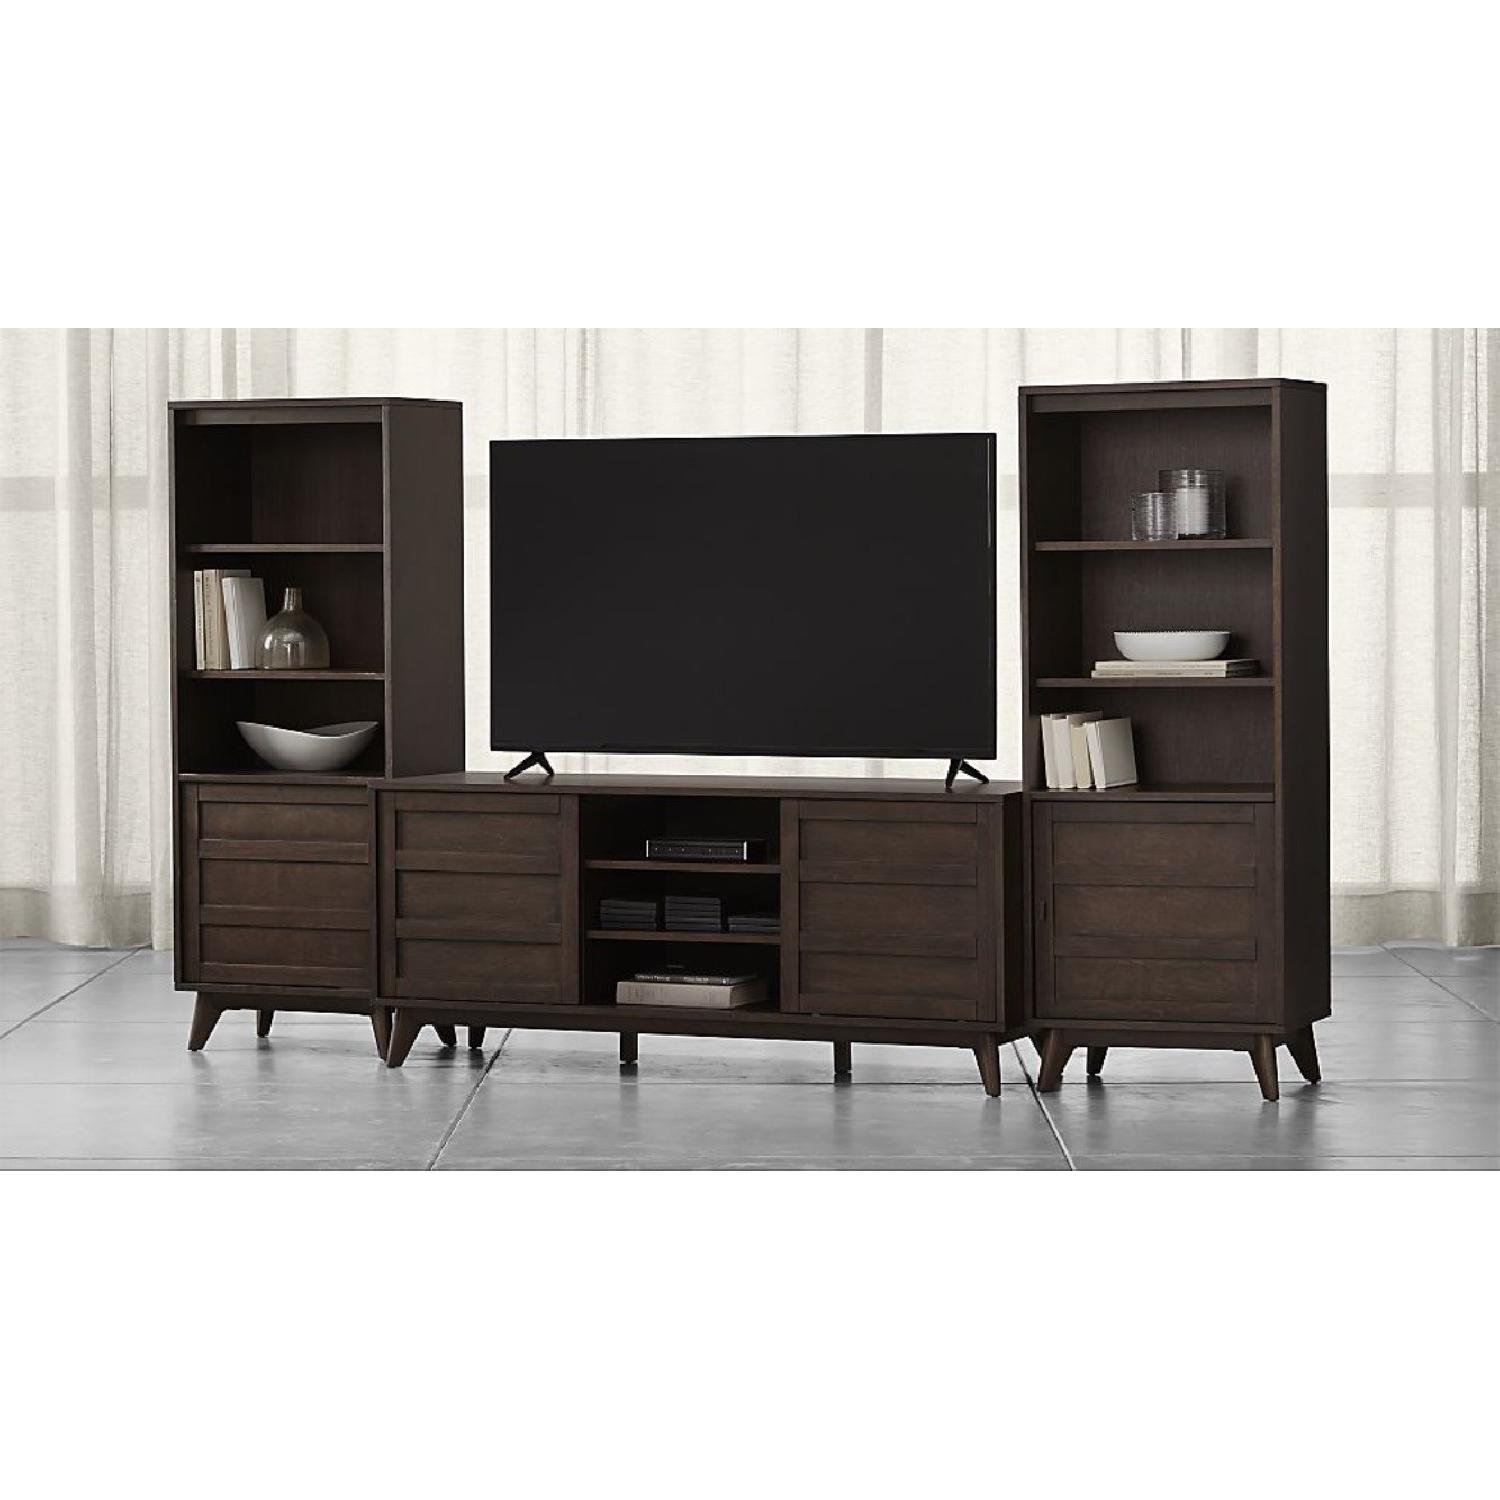 Crate & Barrel HD Media Console w/ 2 Towers